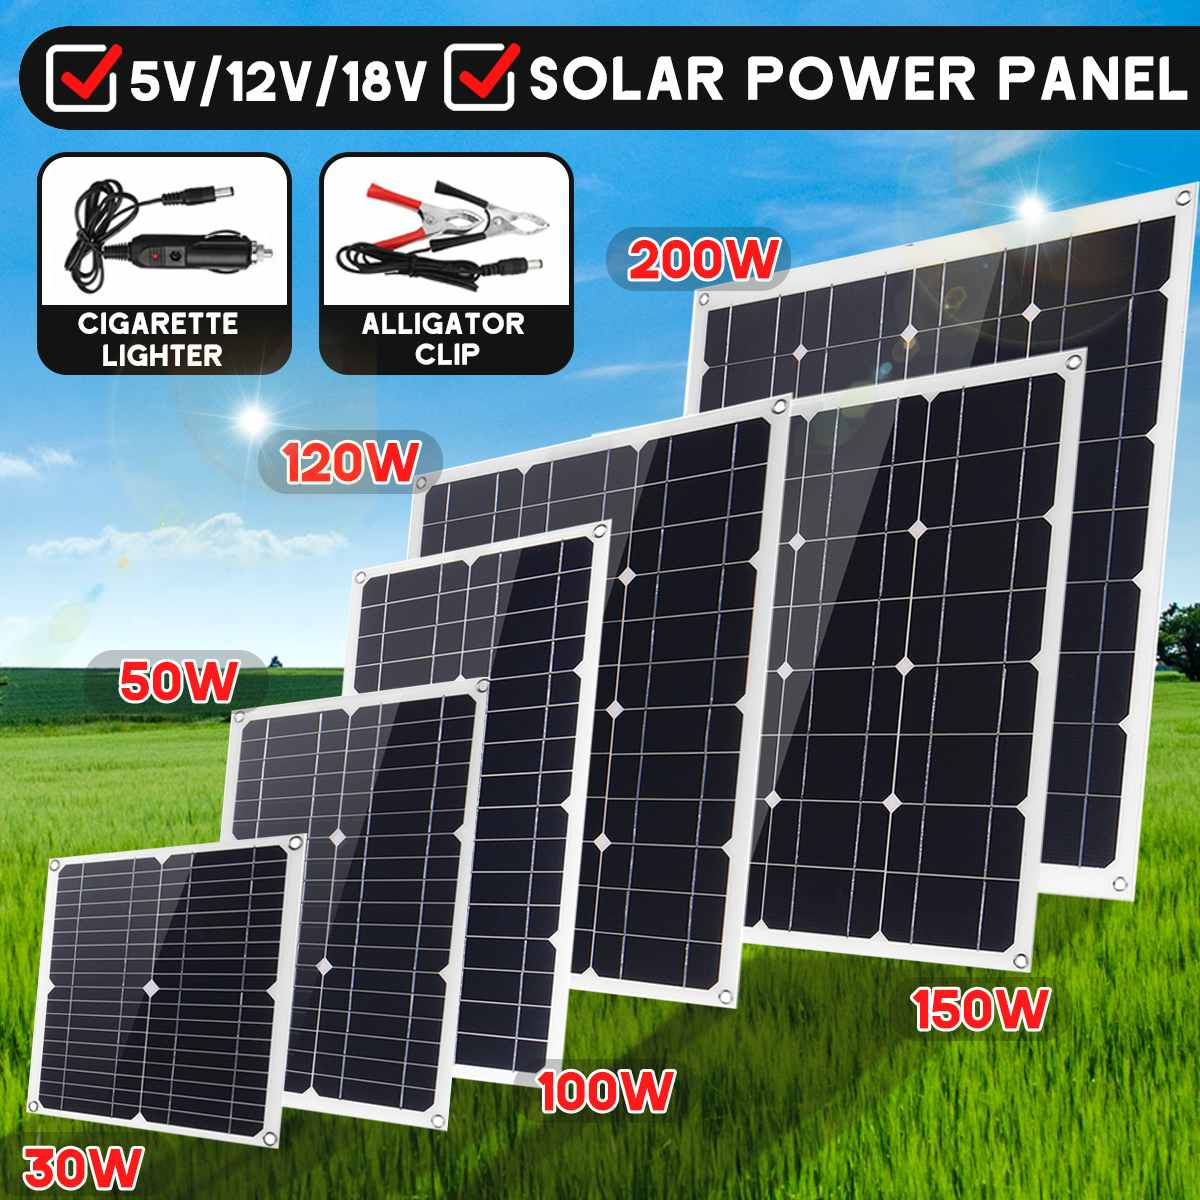 30W/50W/100W/120W/<font><b>150W</b></font>/200W Mono <font><b>Solar</b></font> <font><b>Panel</b></font> 18V DC Dual USB 12V/5V Flexible <font><b>Solar</b></font> Charger For Car RV Boat Battery Charge image